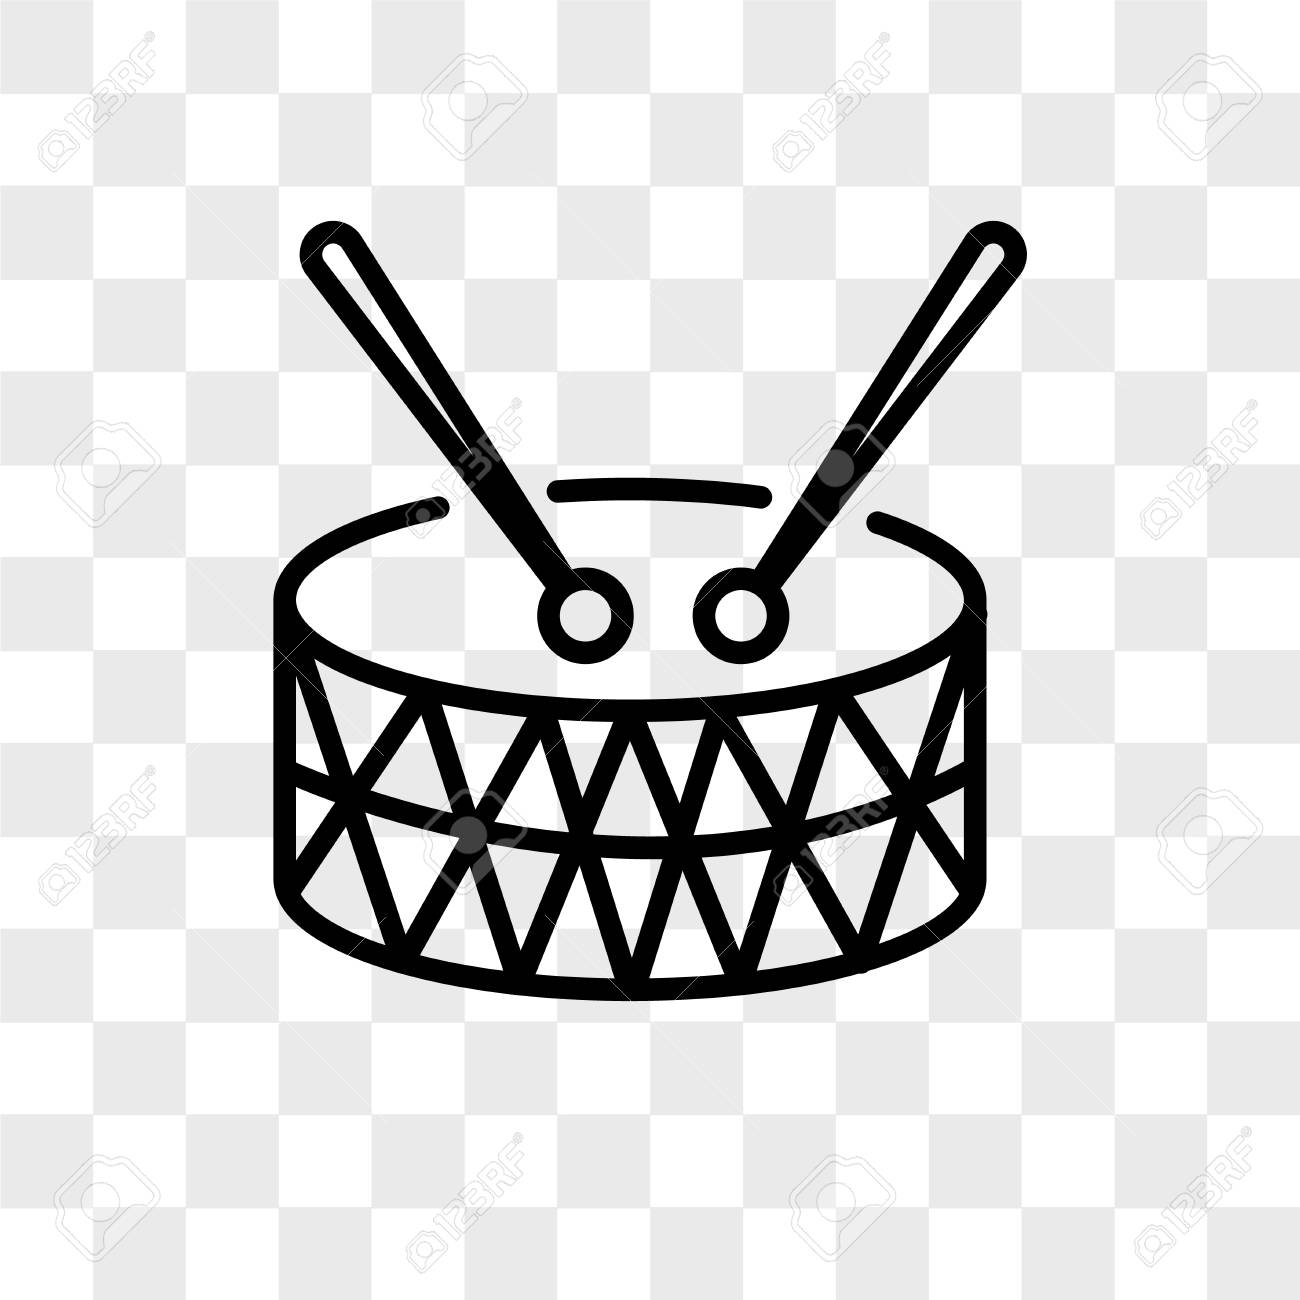 Marching Band Vector Icon Isolated On Transparent Background Royalty Free Cliparts Vectors And Stock Illustration Image 108637392